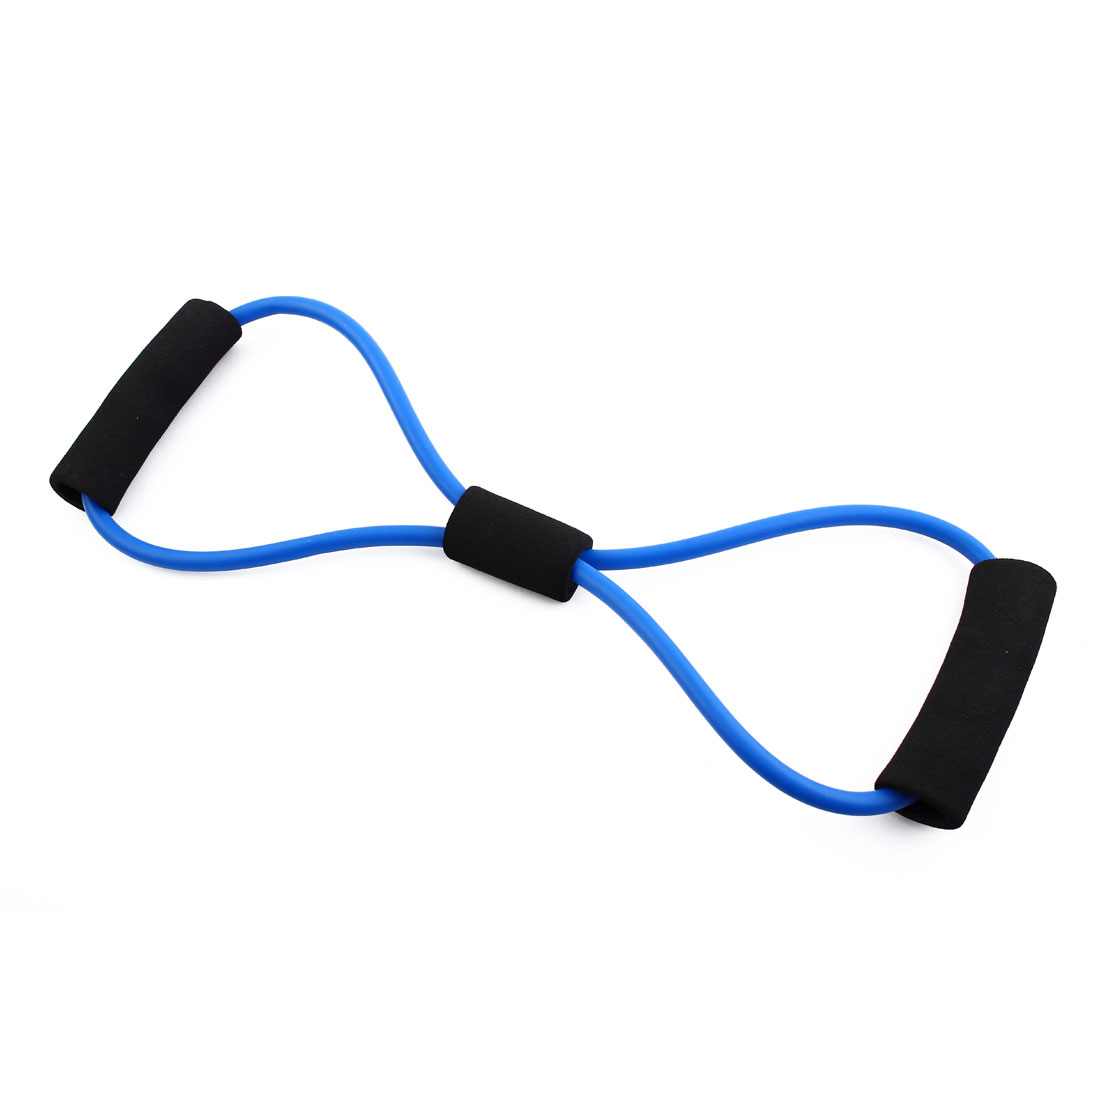 Gymnasium 8 Shape Powerlifting Workout Resistance Tube Strength Training Rope Fitness Exercise Hose Blue